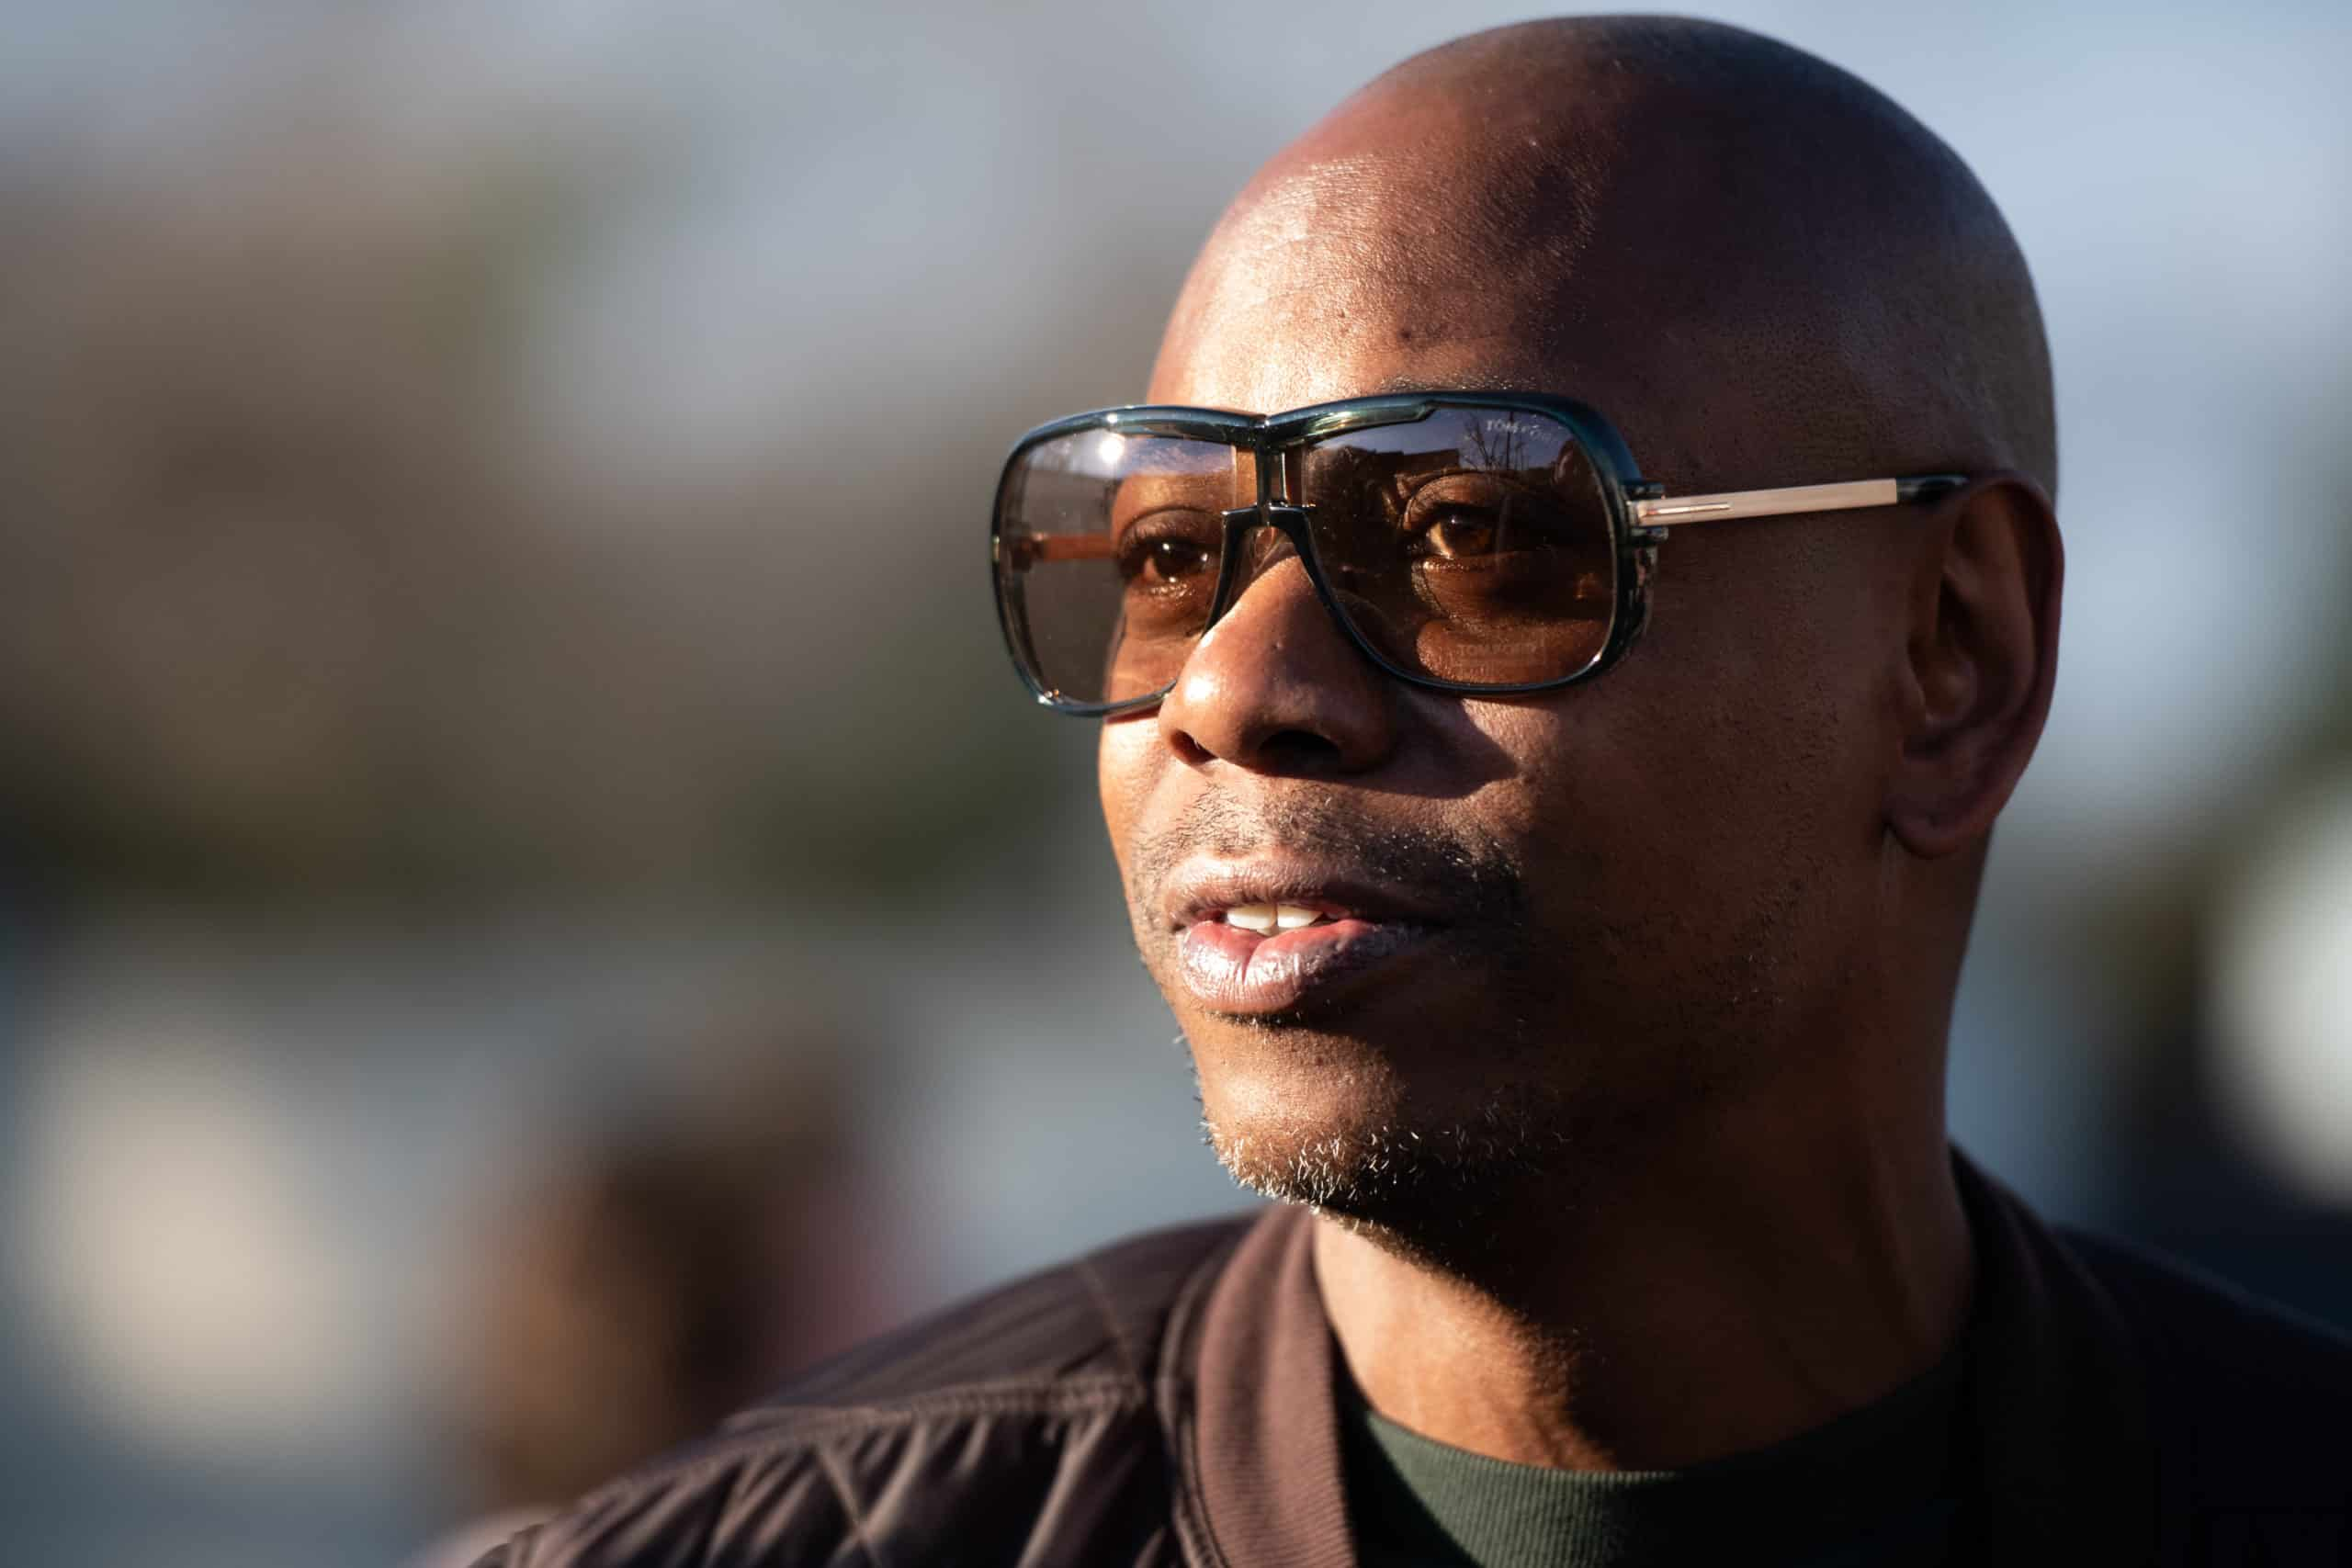 """Several groups are calling for Dave Chappelle's """"The Closer"""" special to be pulled from Netflix."""